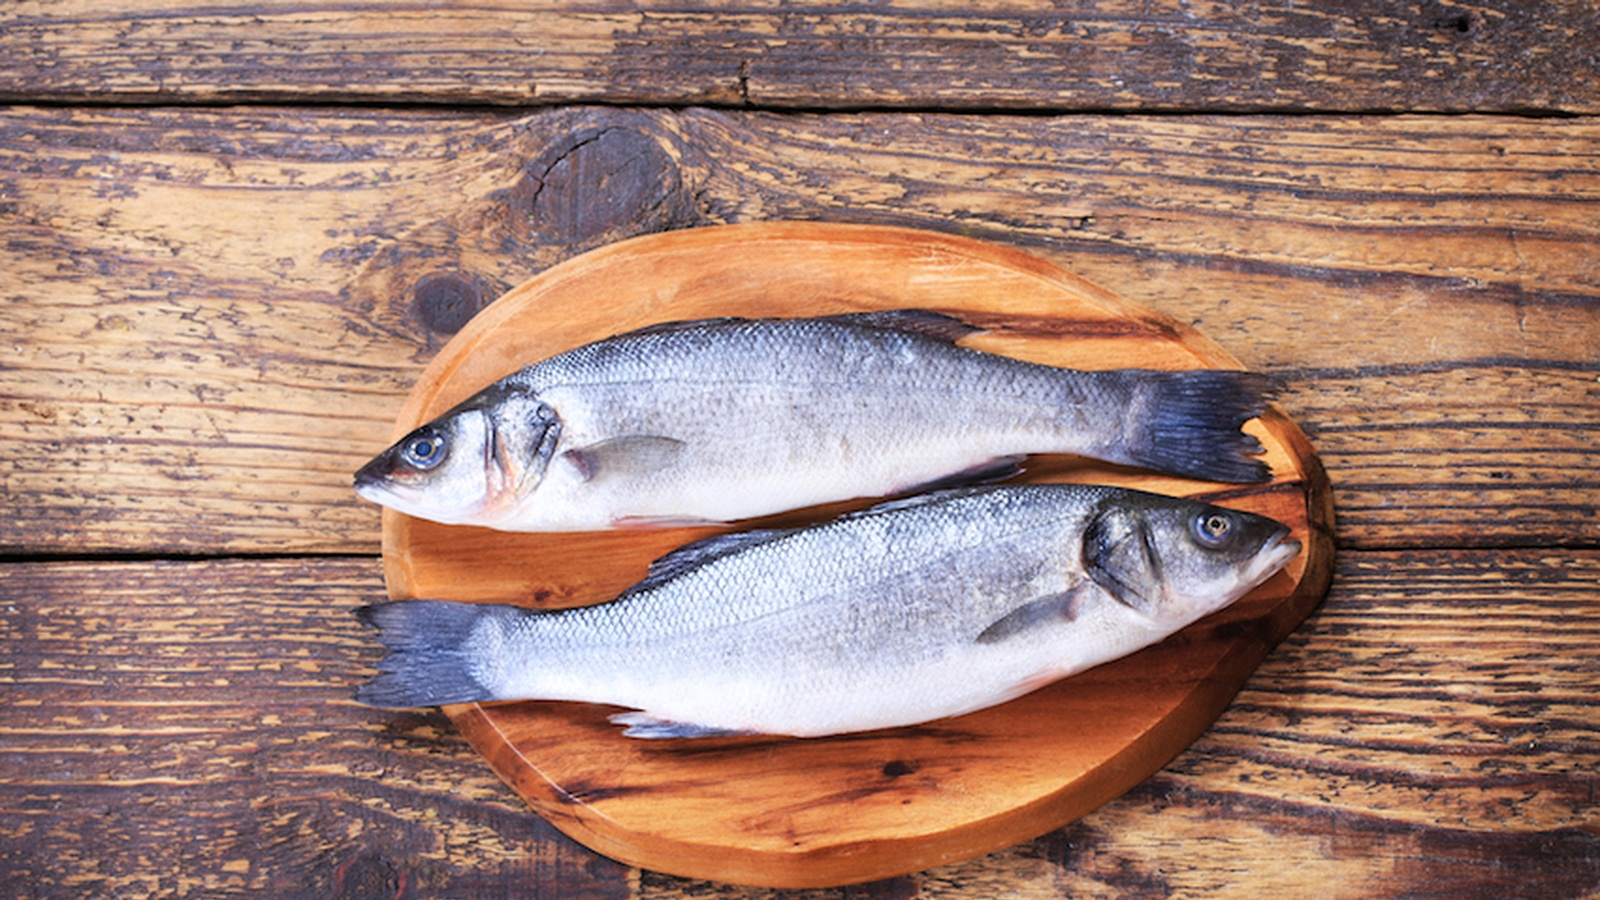 The Most Toxic Fish That You Should Avoid Food Matters